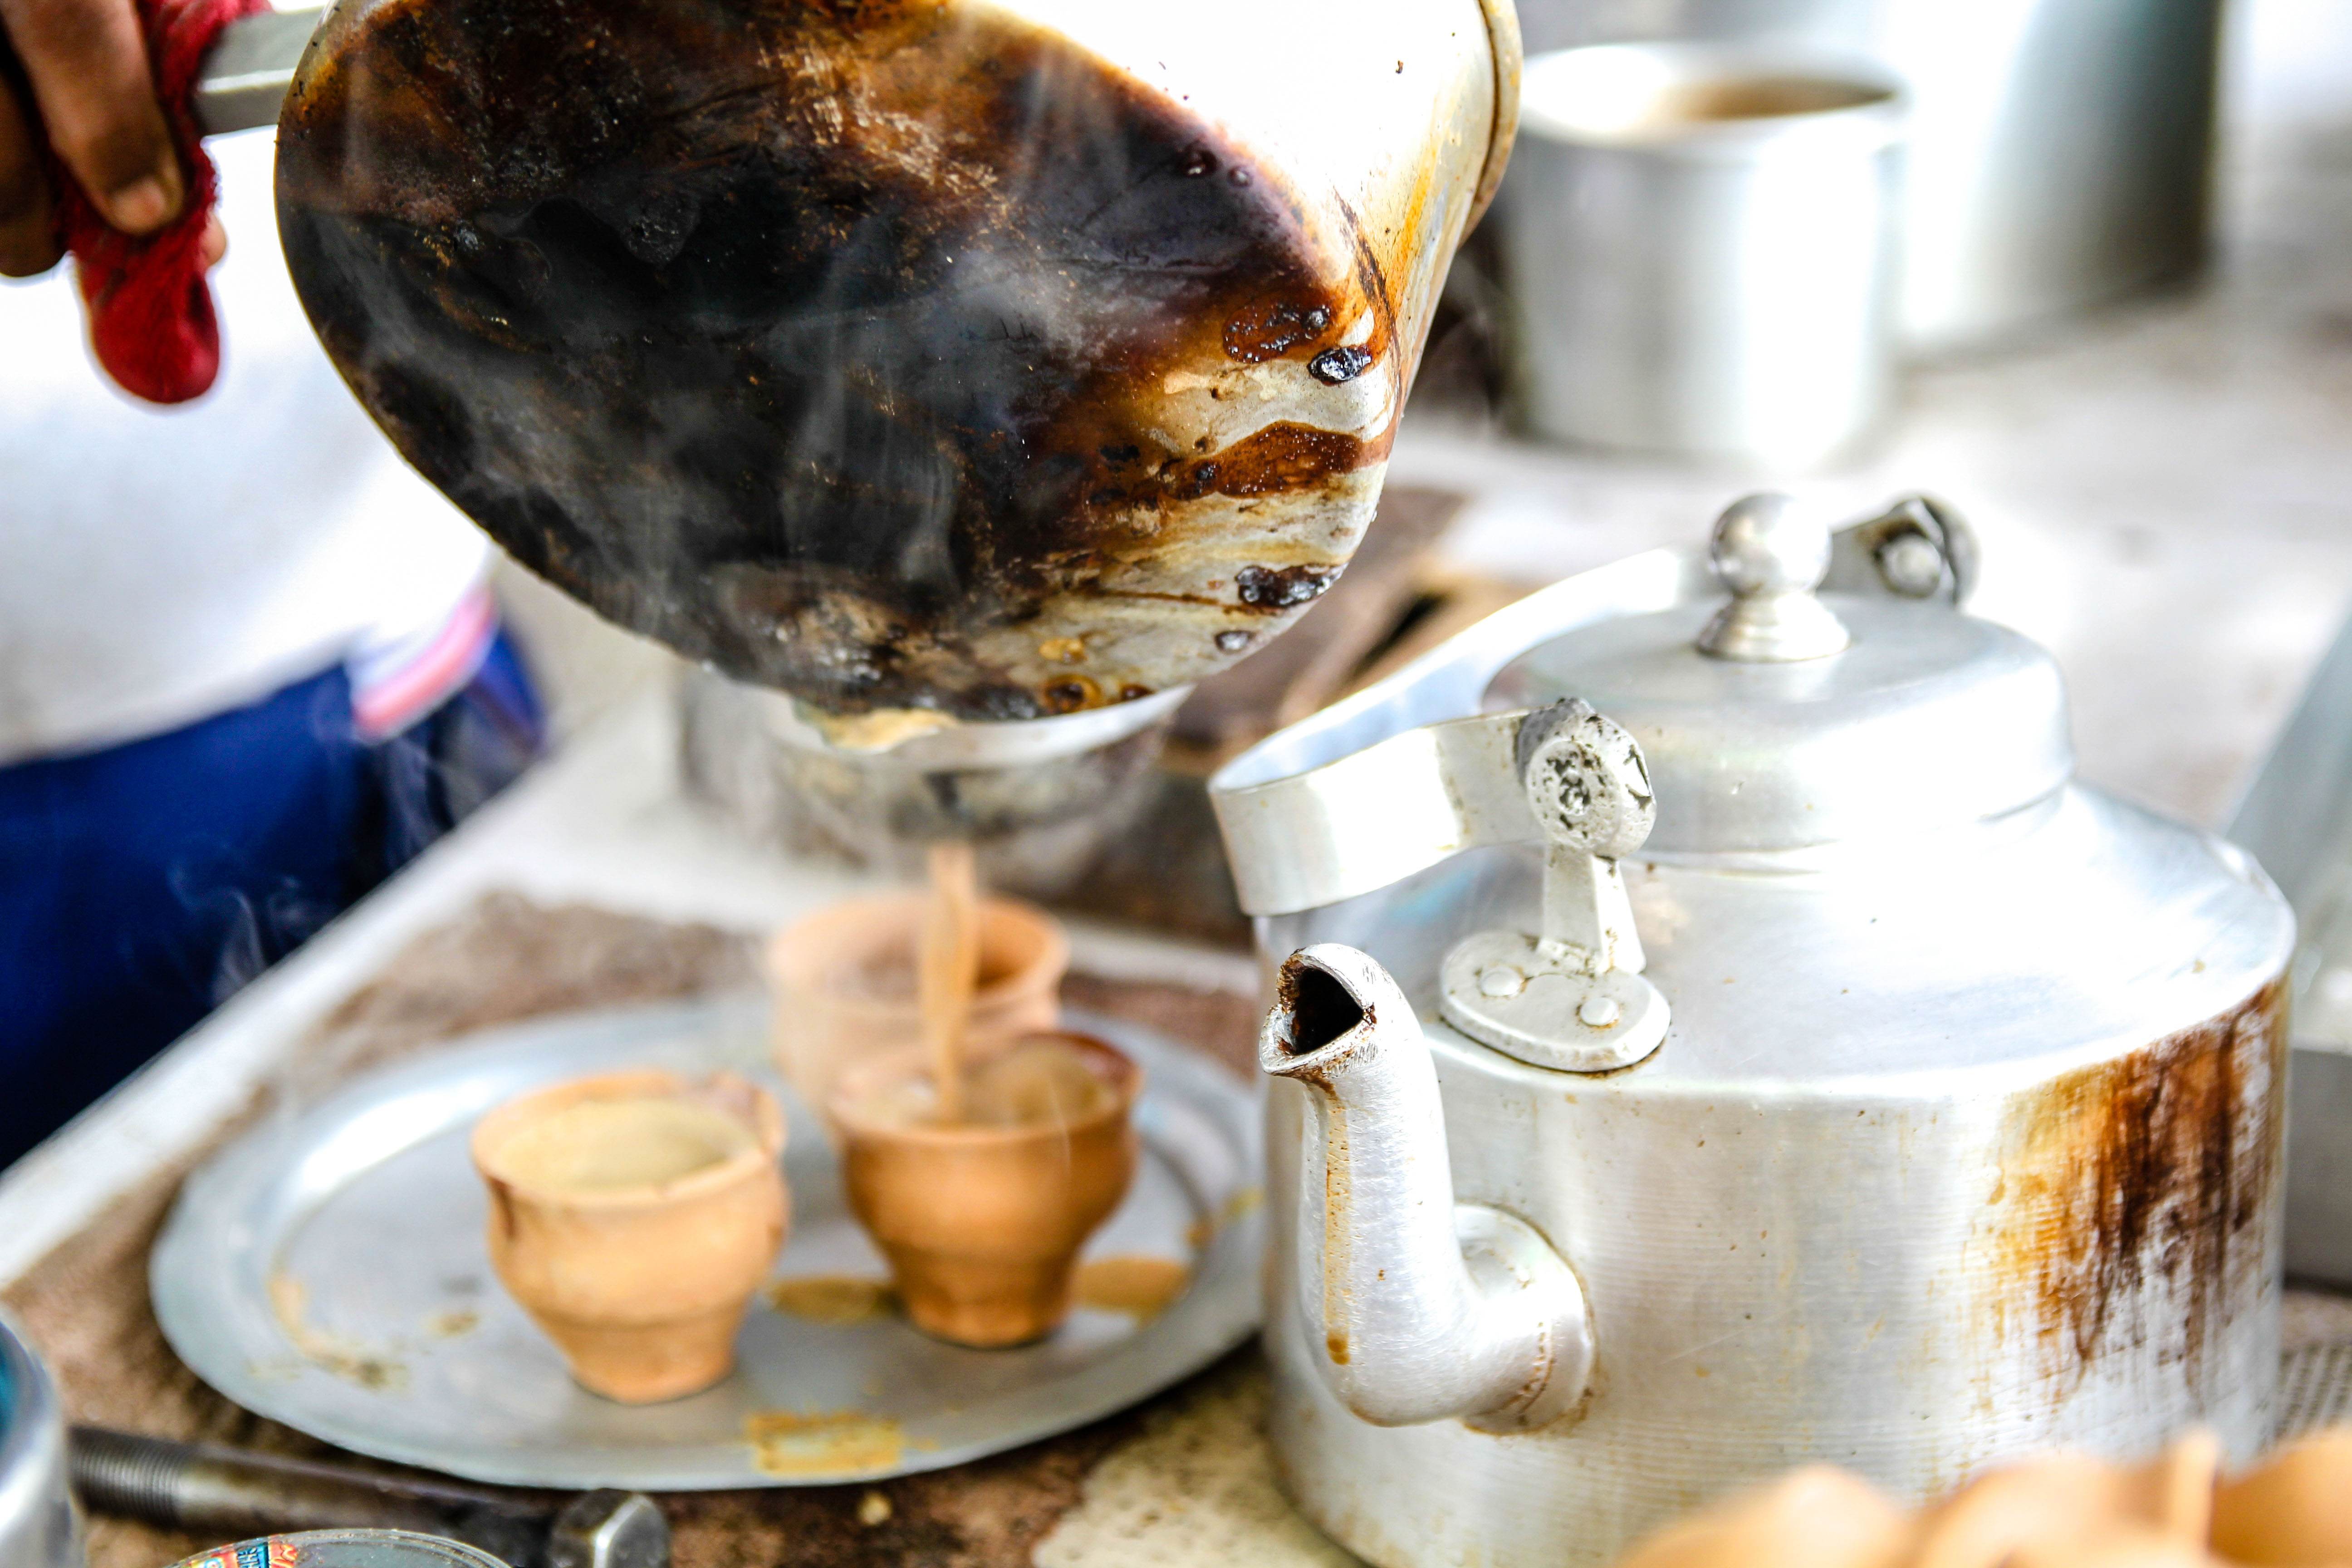 Chai served in bhar, clay cups commonly used in Kolkata. Photo: Resham Gellatly